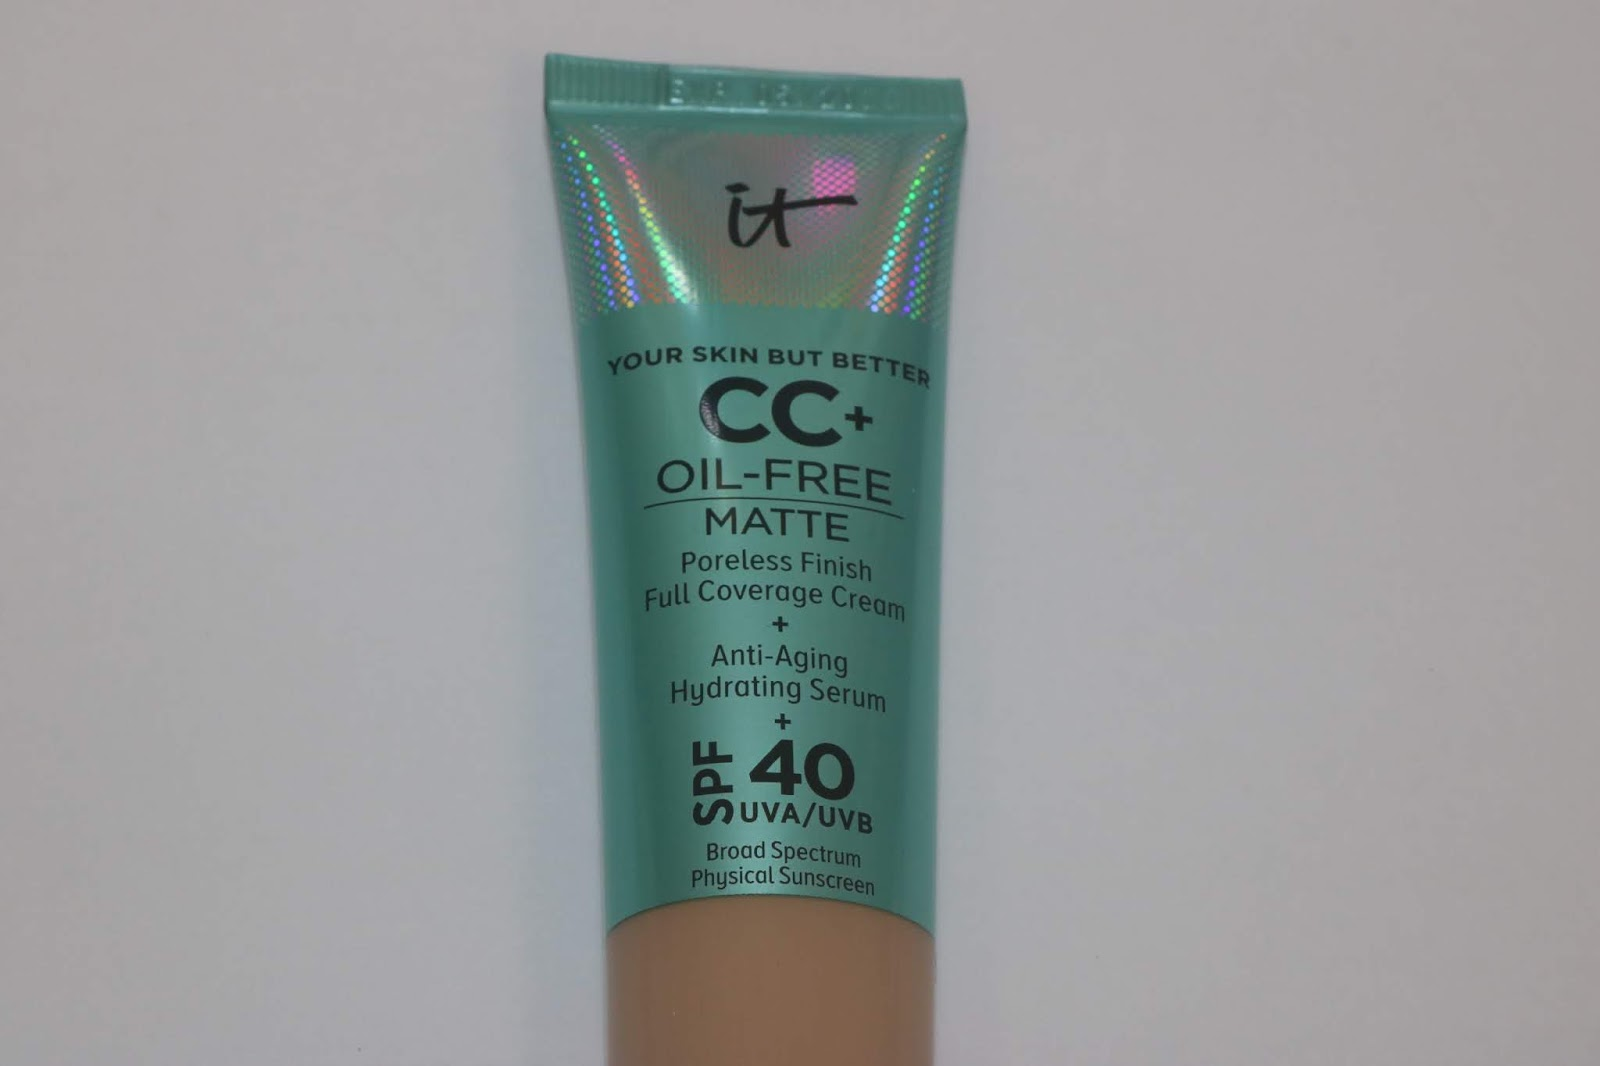 IT Your Skin But Better CC+ Oil Free Matte Full Coverage Cream